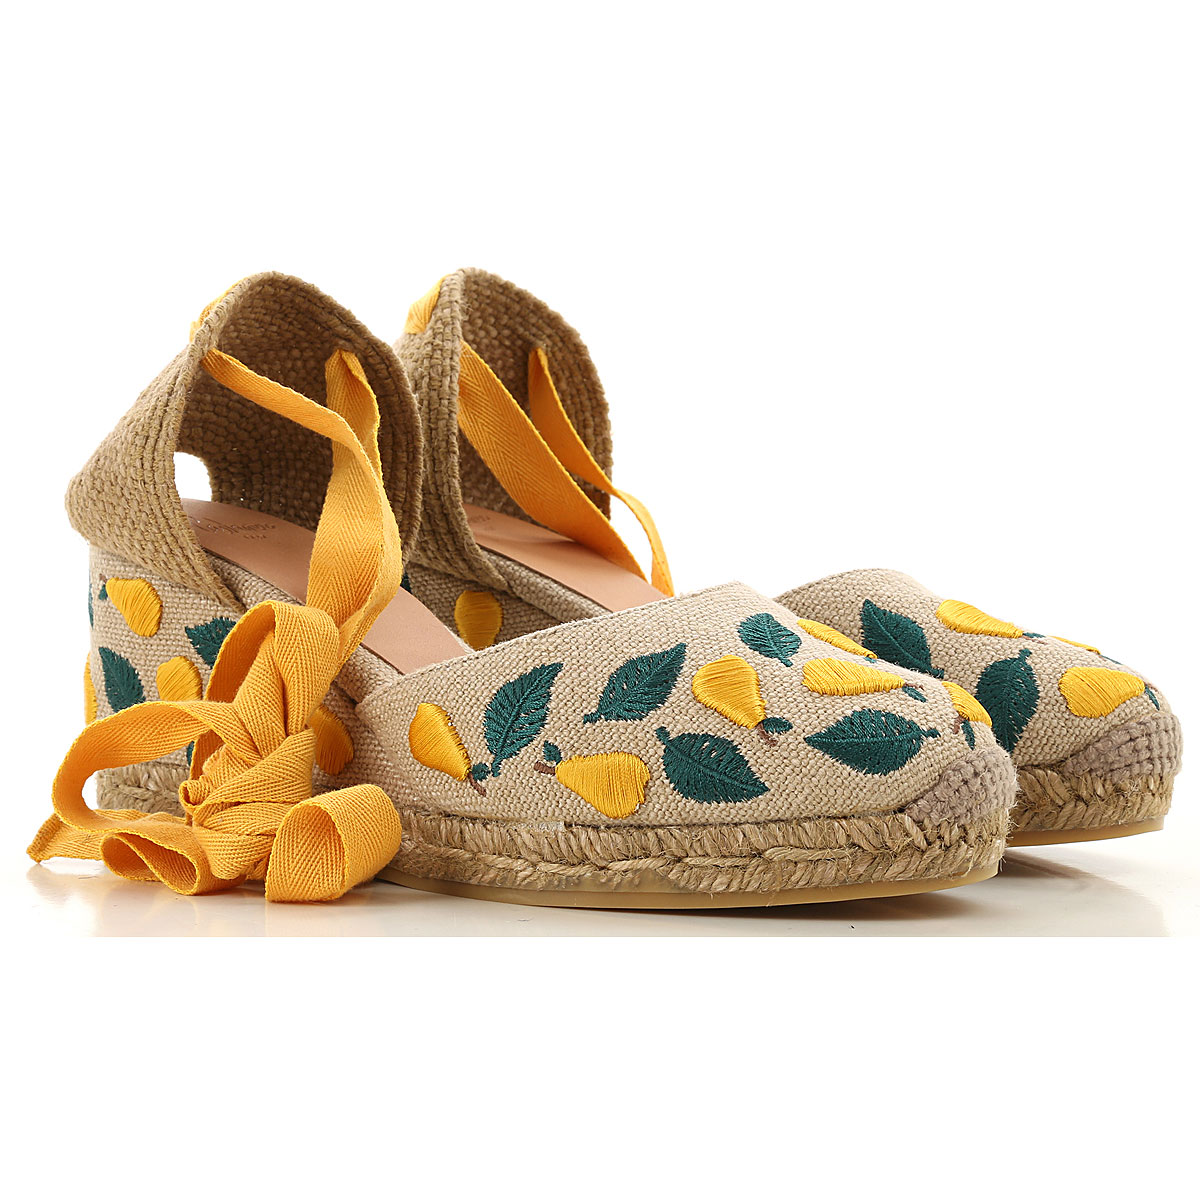 Castaner Wedges for Women On Sale in Outlet, Yellow, Yuta, 2019, 6